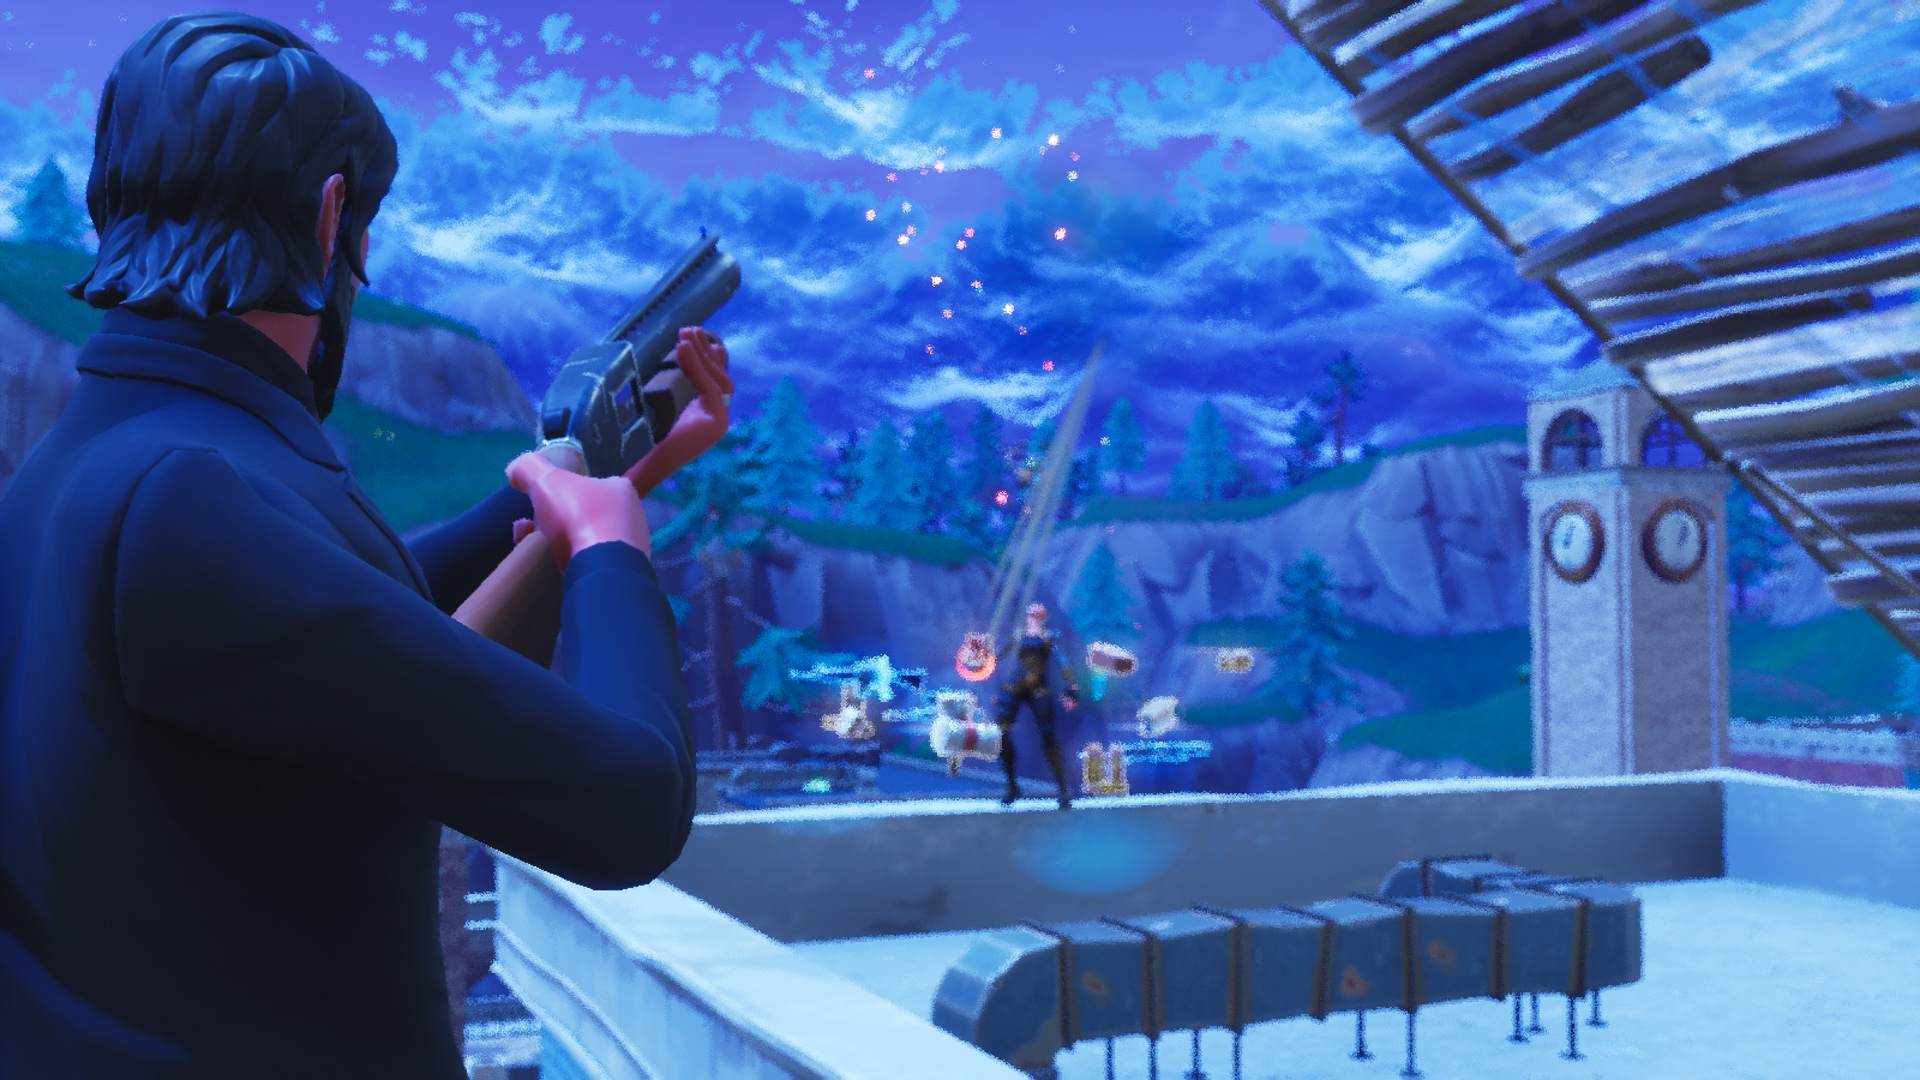 Fortnite replays: How to start making ridiculously cool